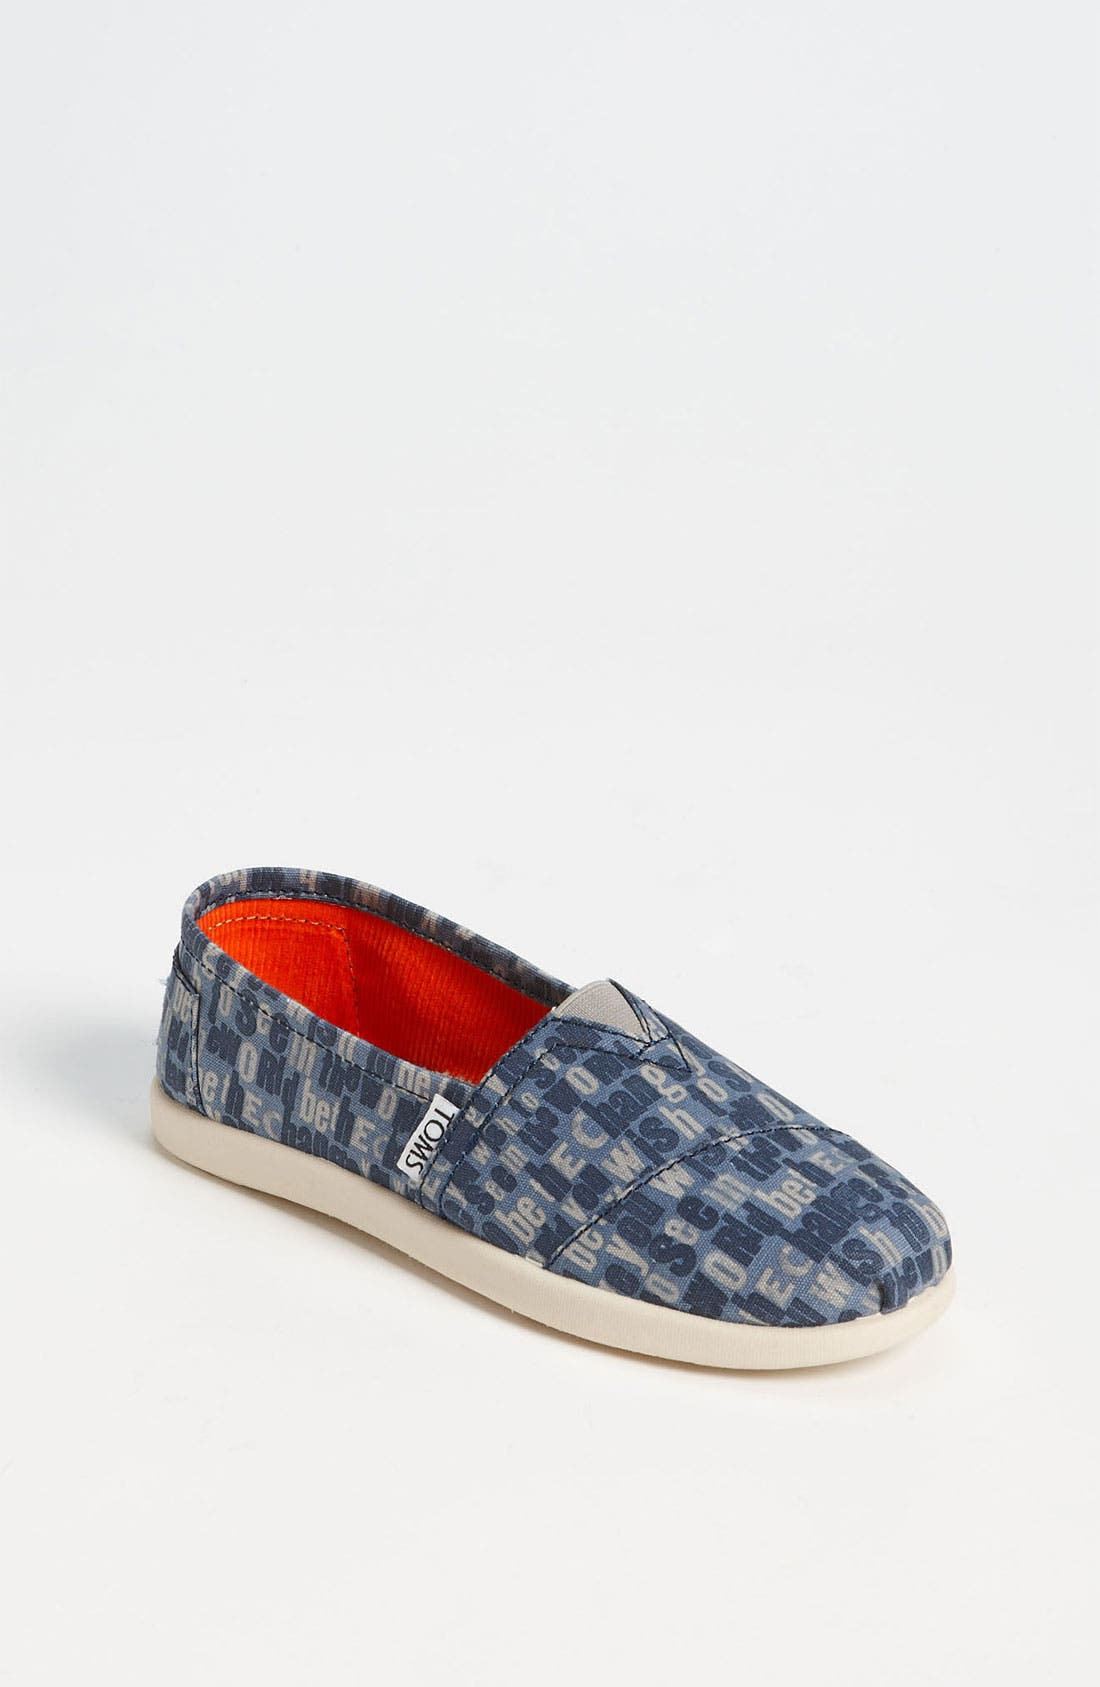 Alternate Image 1 Selected - TOMS 'Classic Youth - Ash' Slip-On (Toddler, Little Kid & Big Kid)